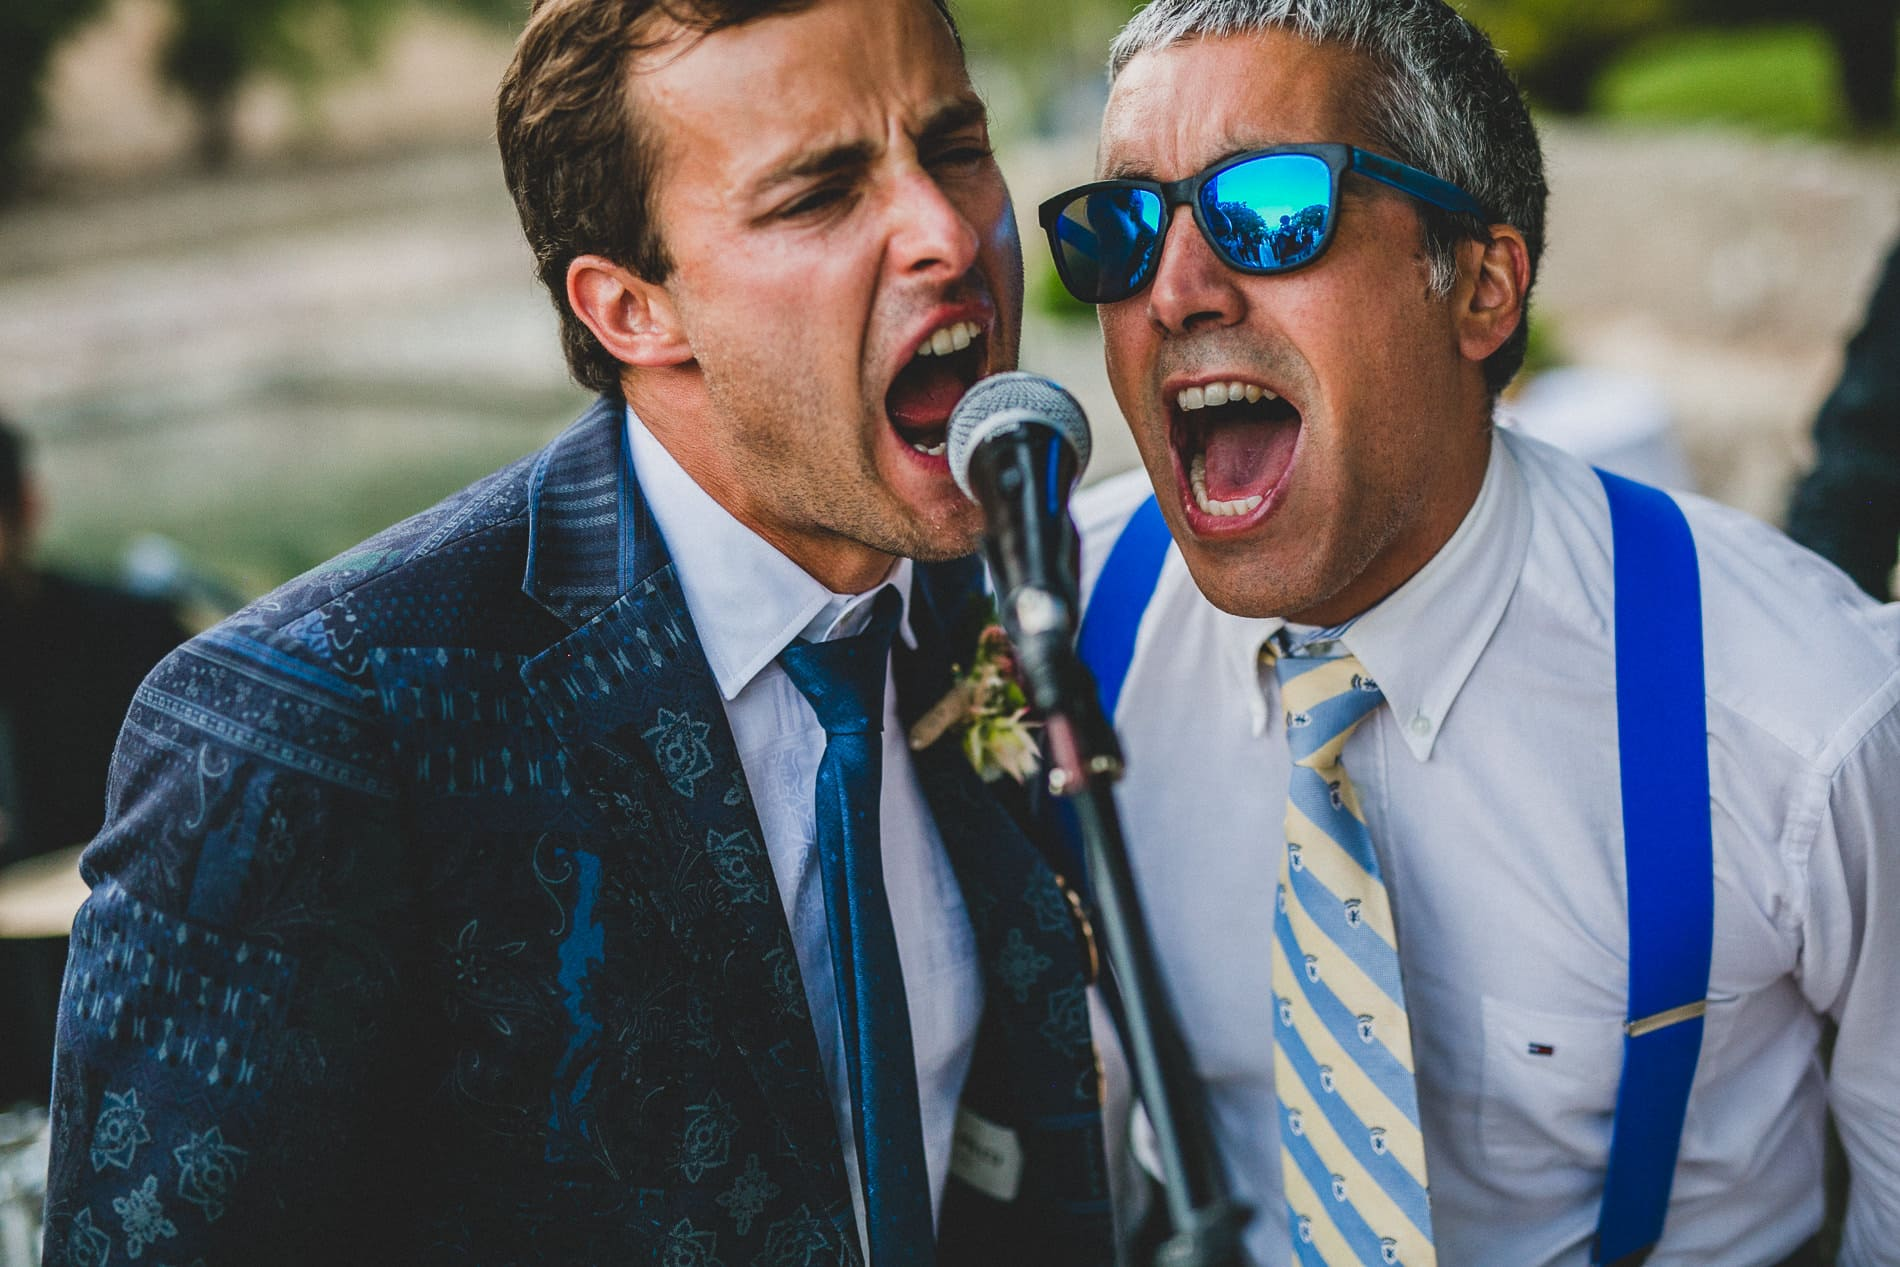 groom and best man singing out loud